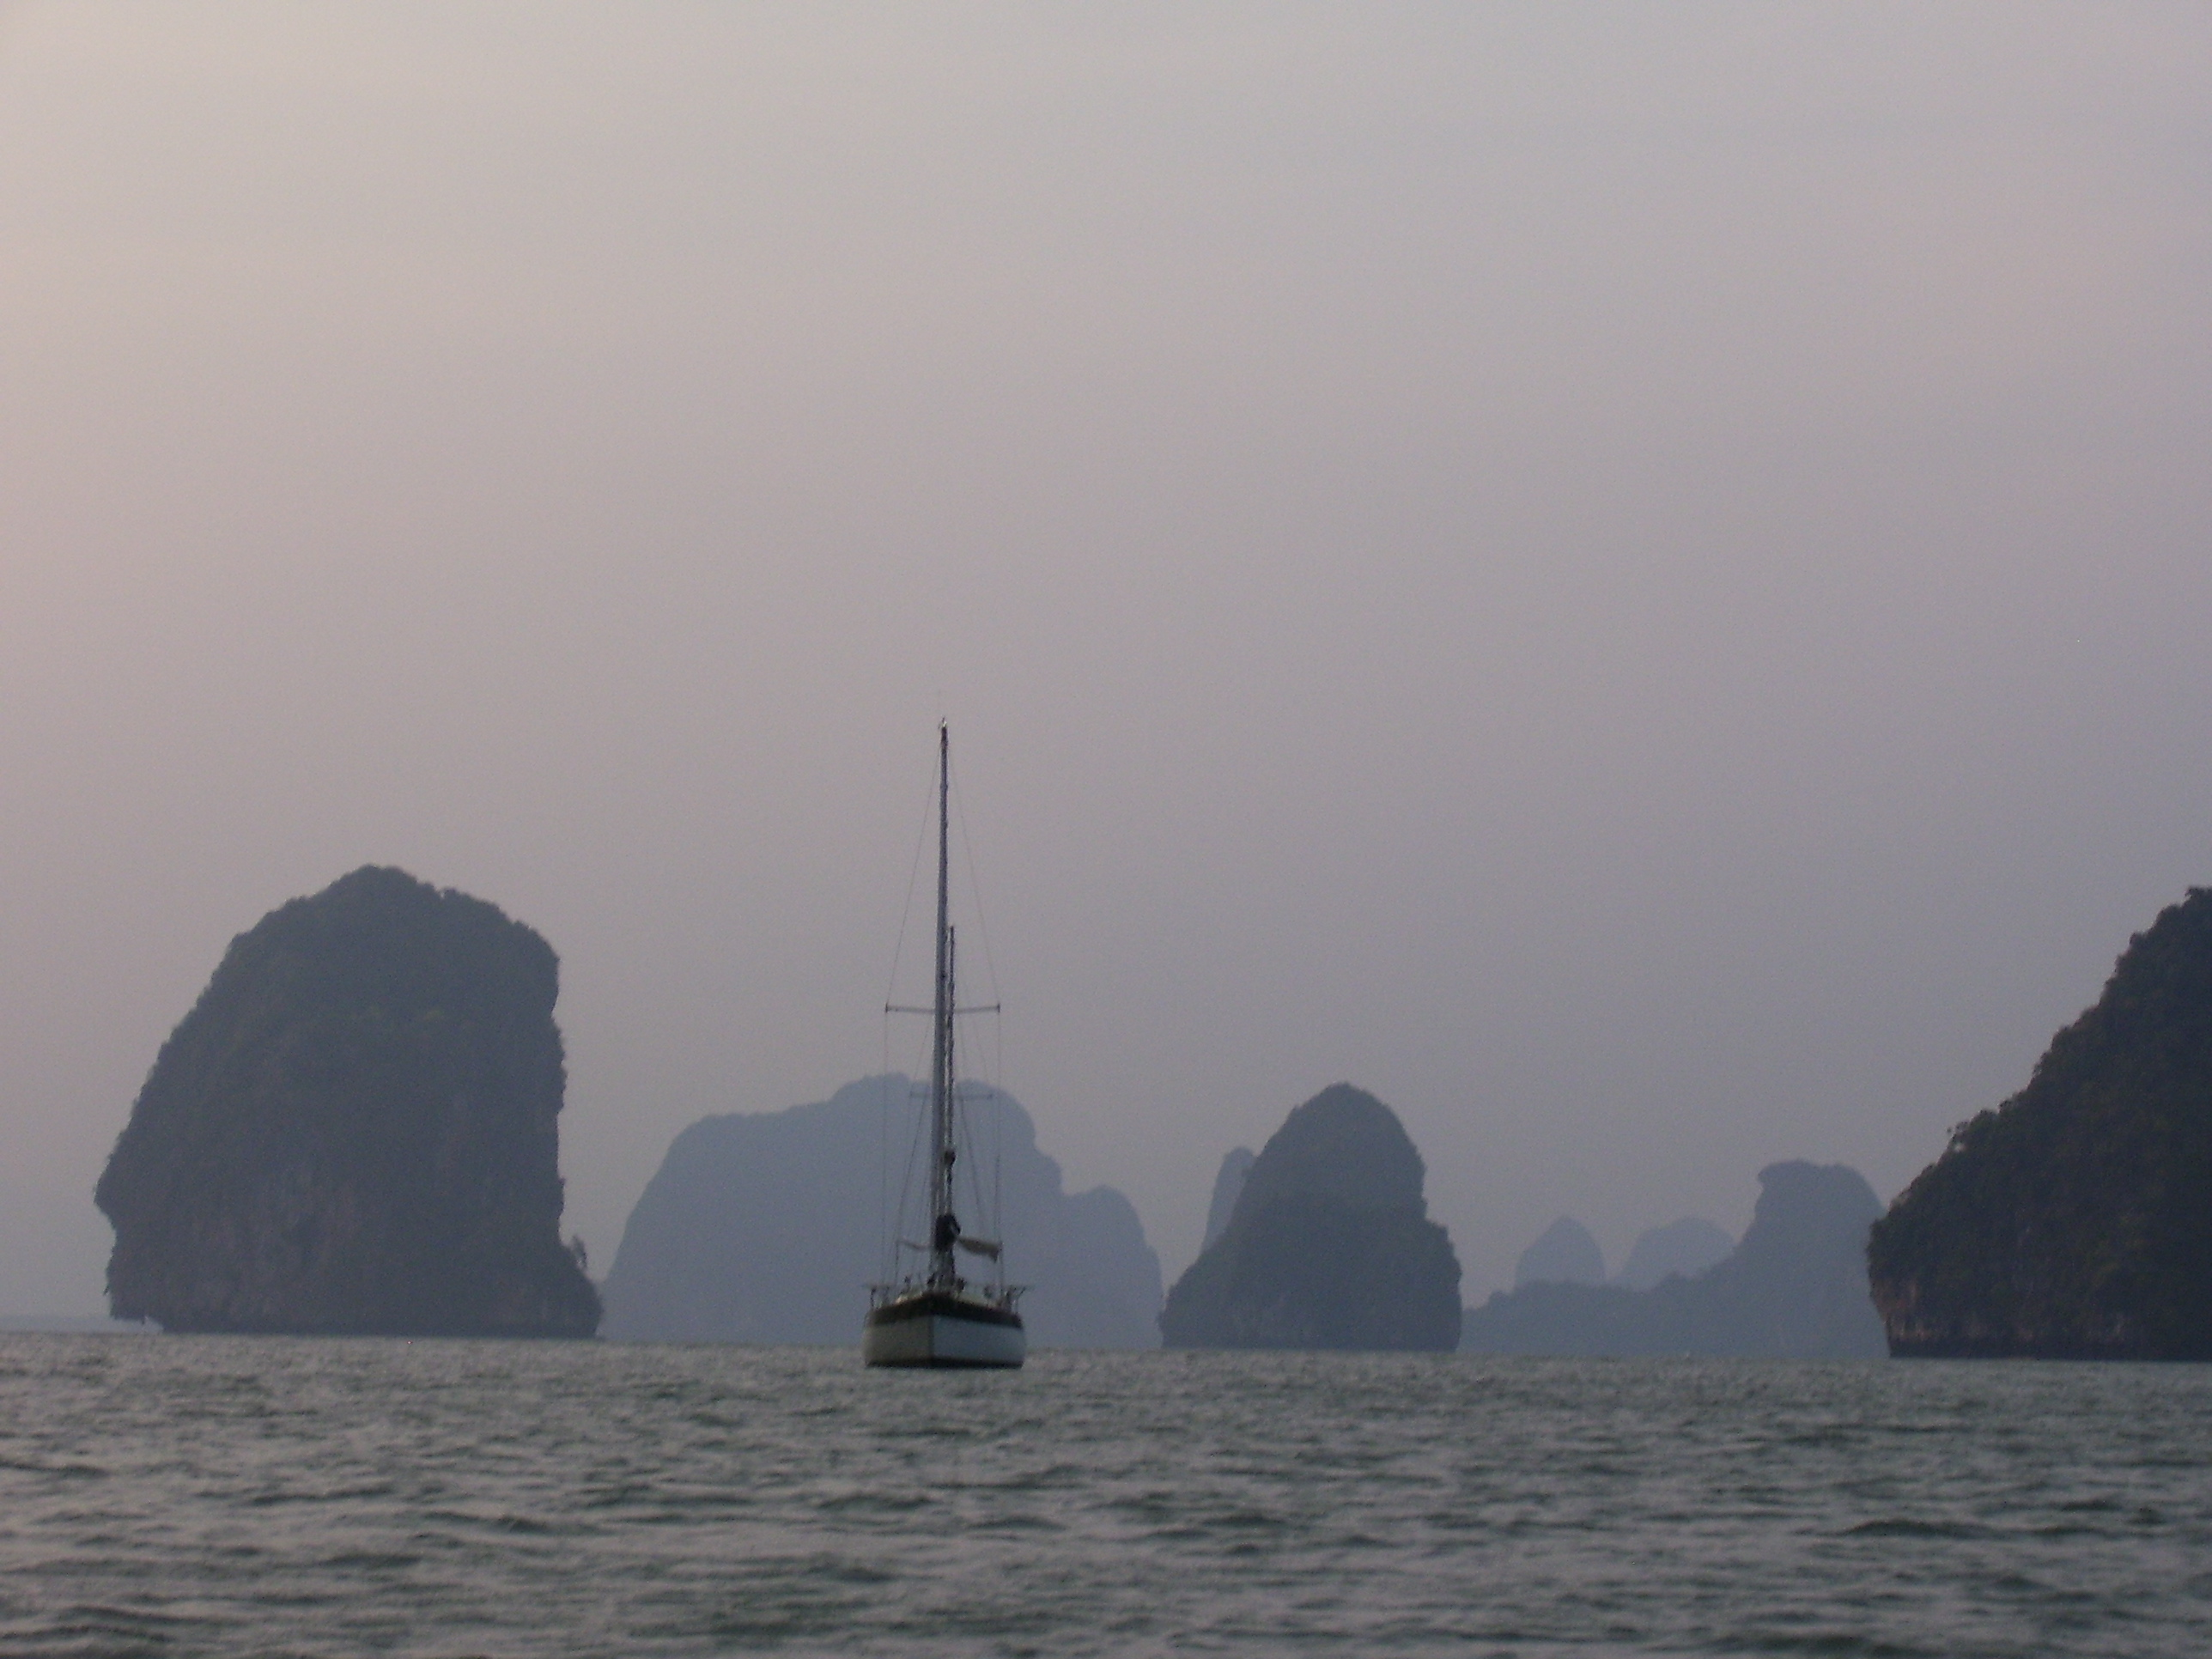 Travel in Thailand: Yana de Lys anchored in Phang Nga Bay